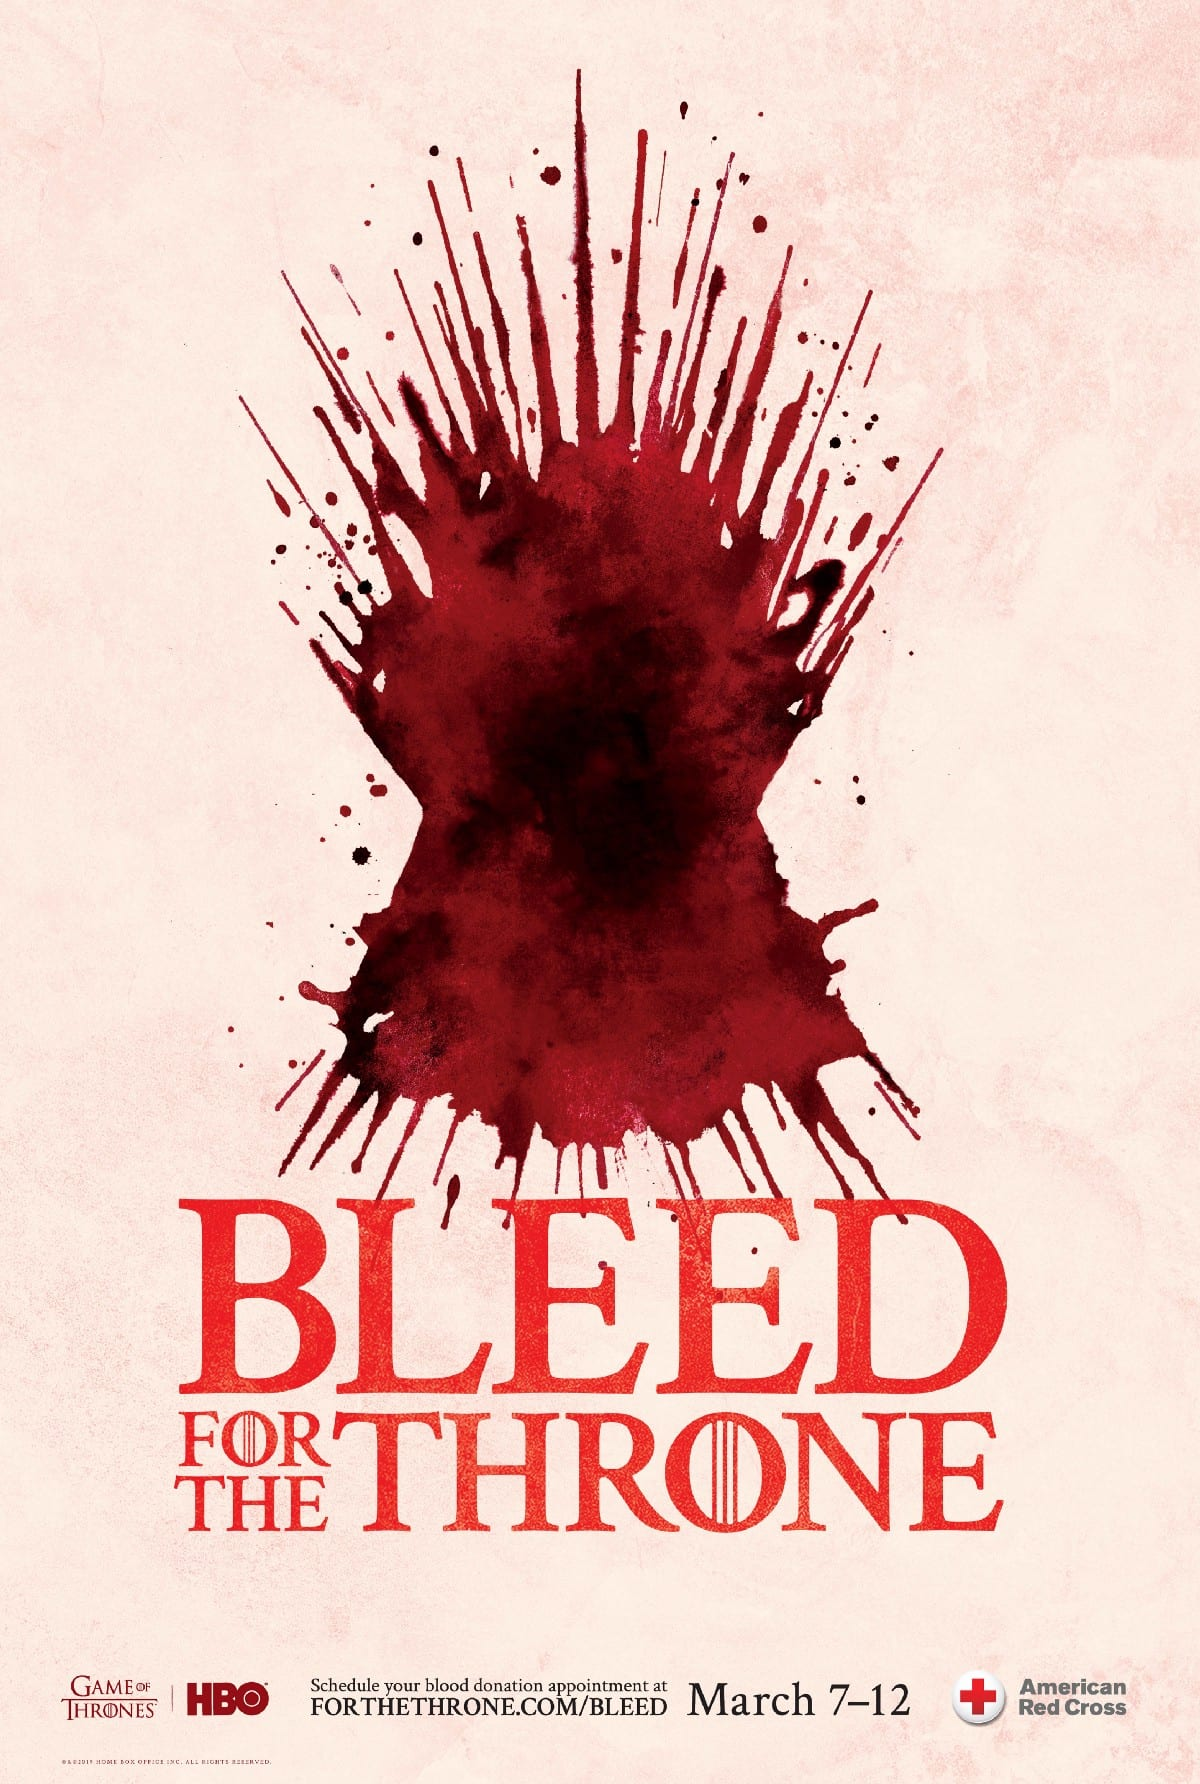 game-of-thrones-launches-bleed-for-the-throne